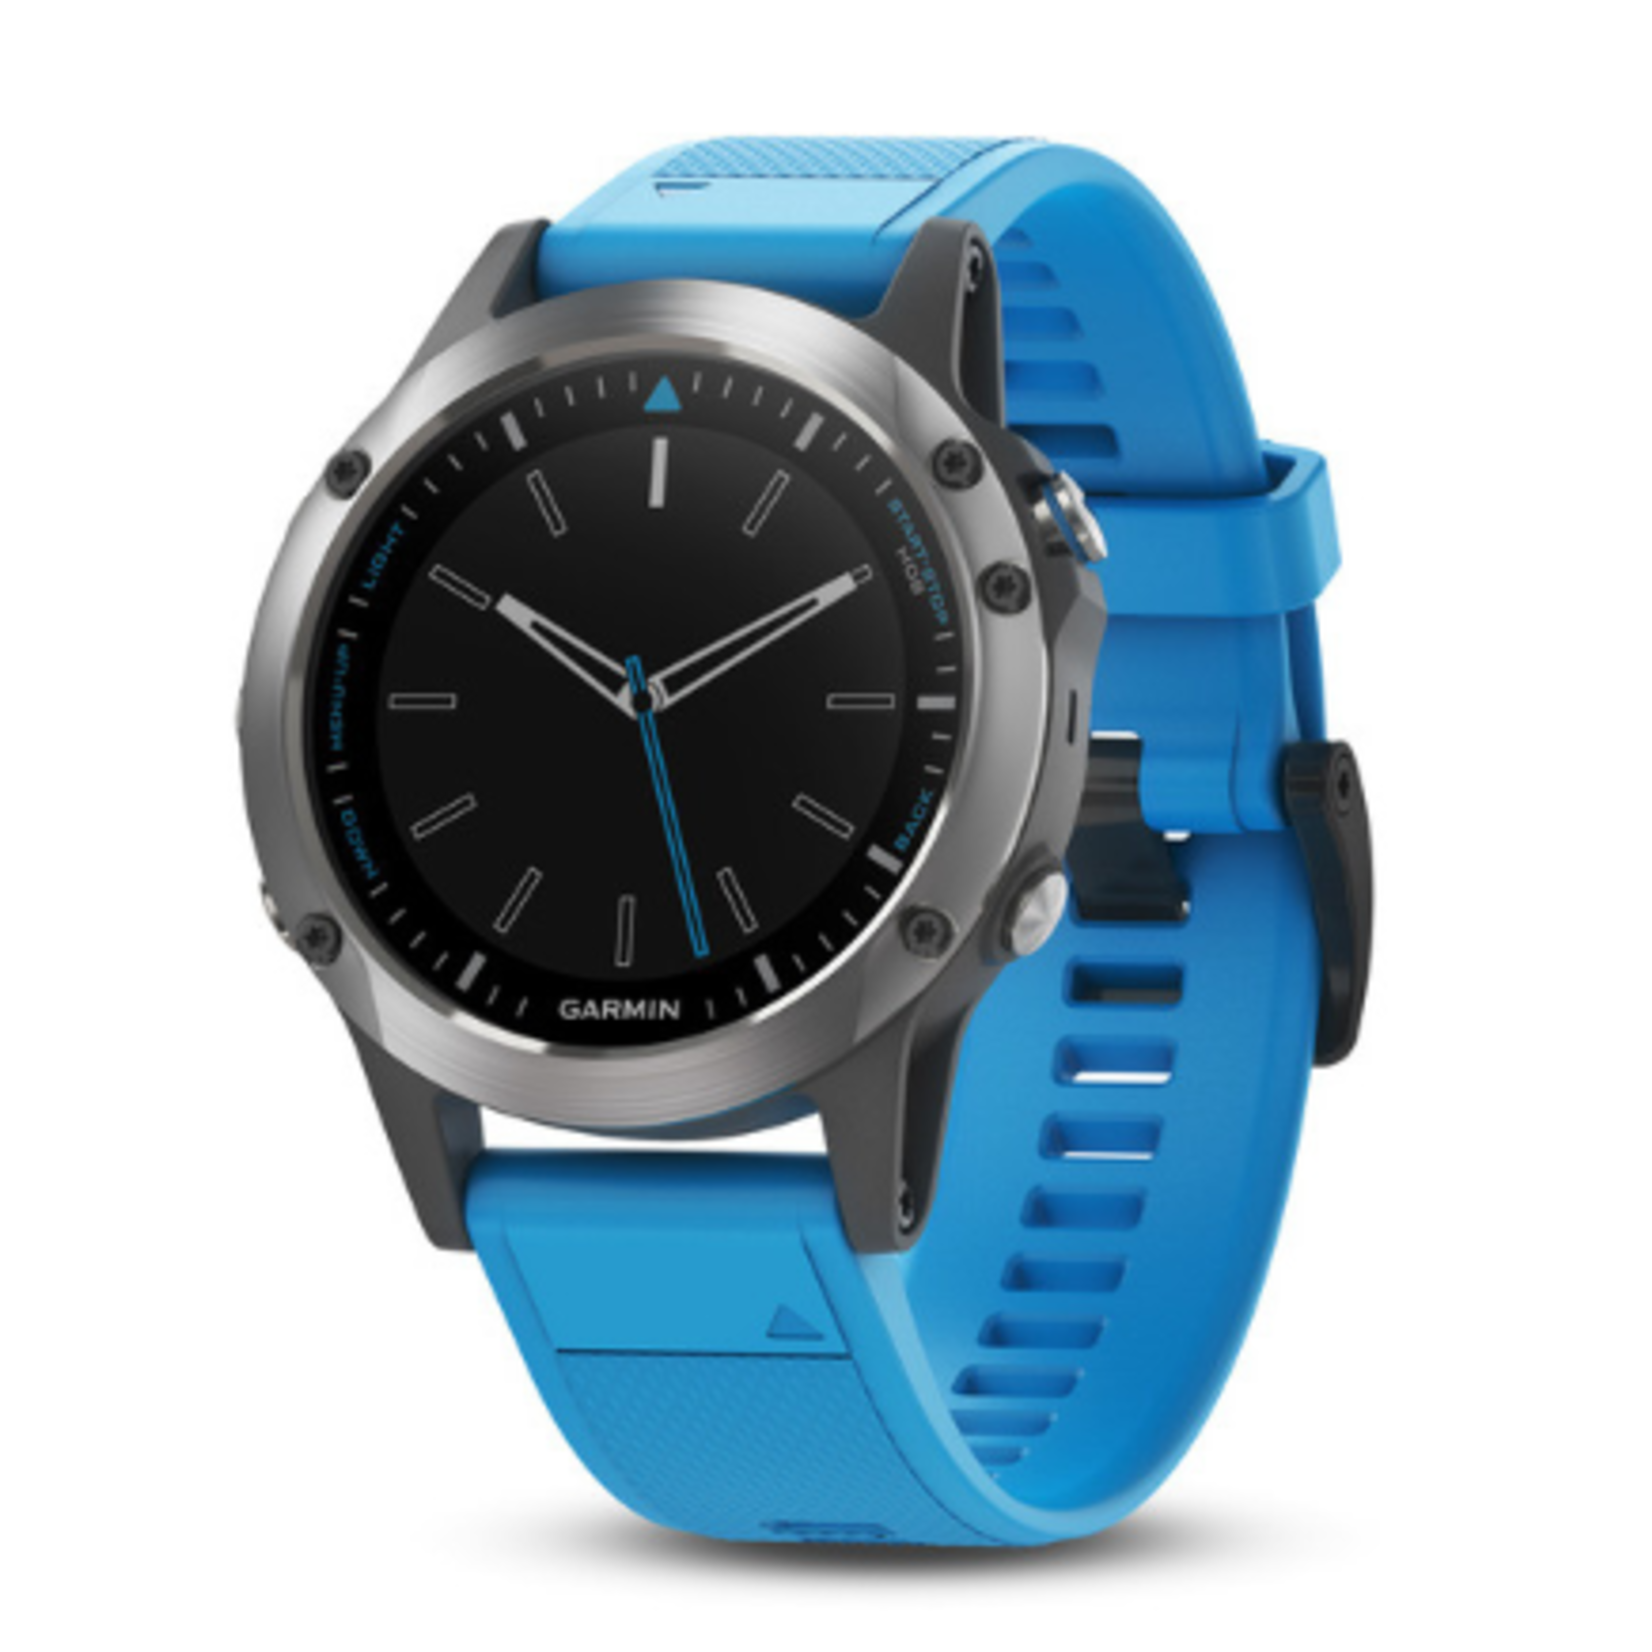 quatix® 5, Stainless Steel with Blue Band, WW